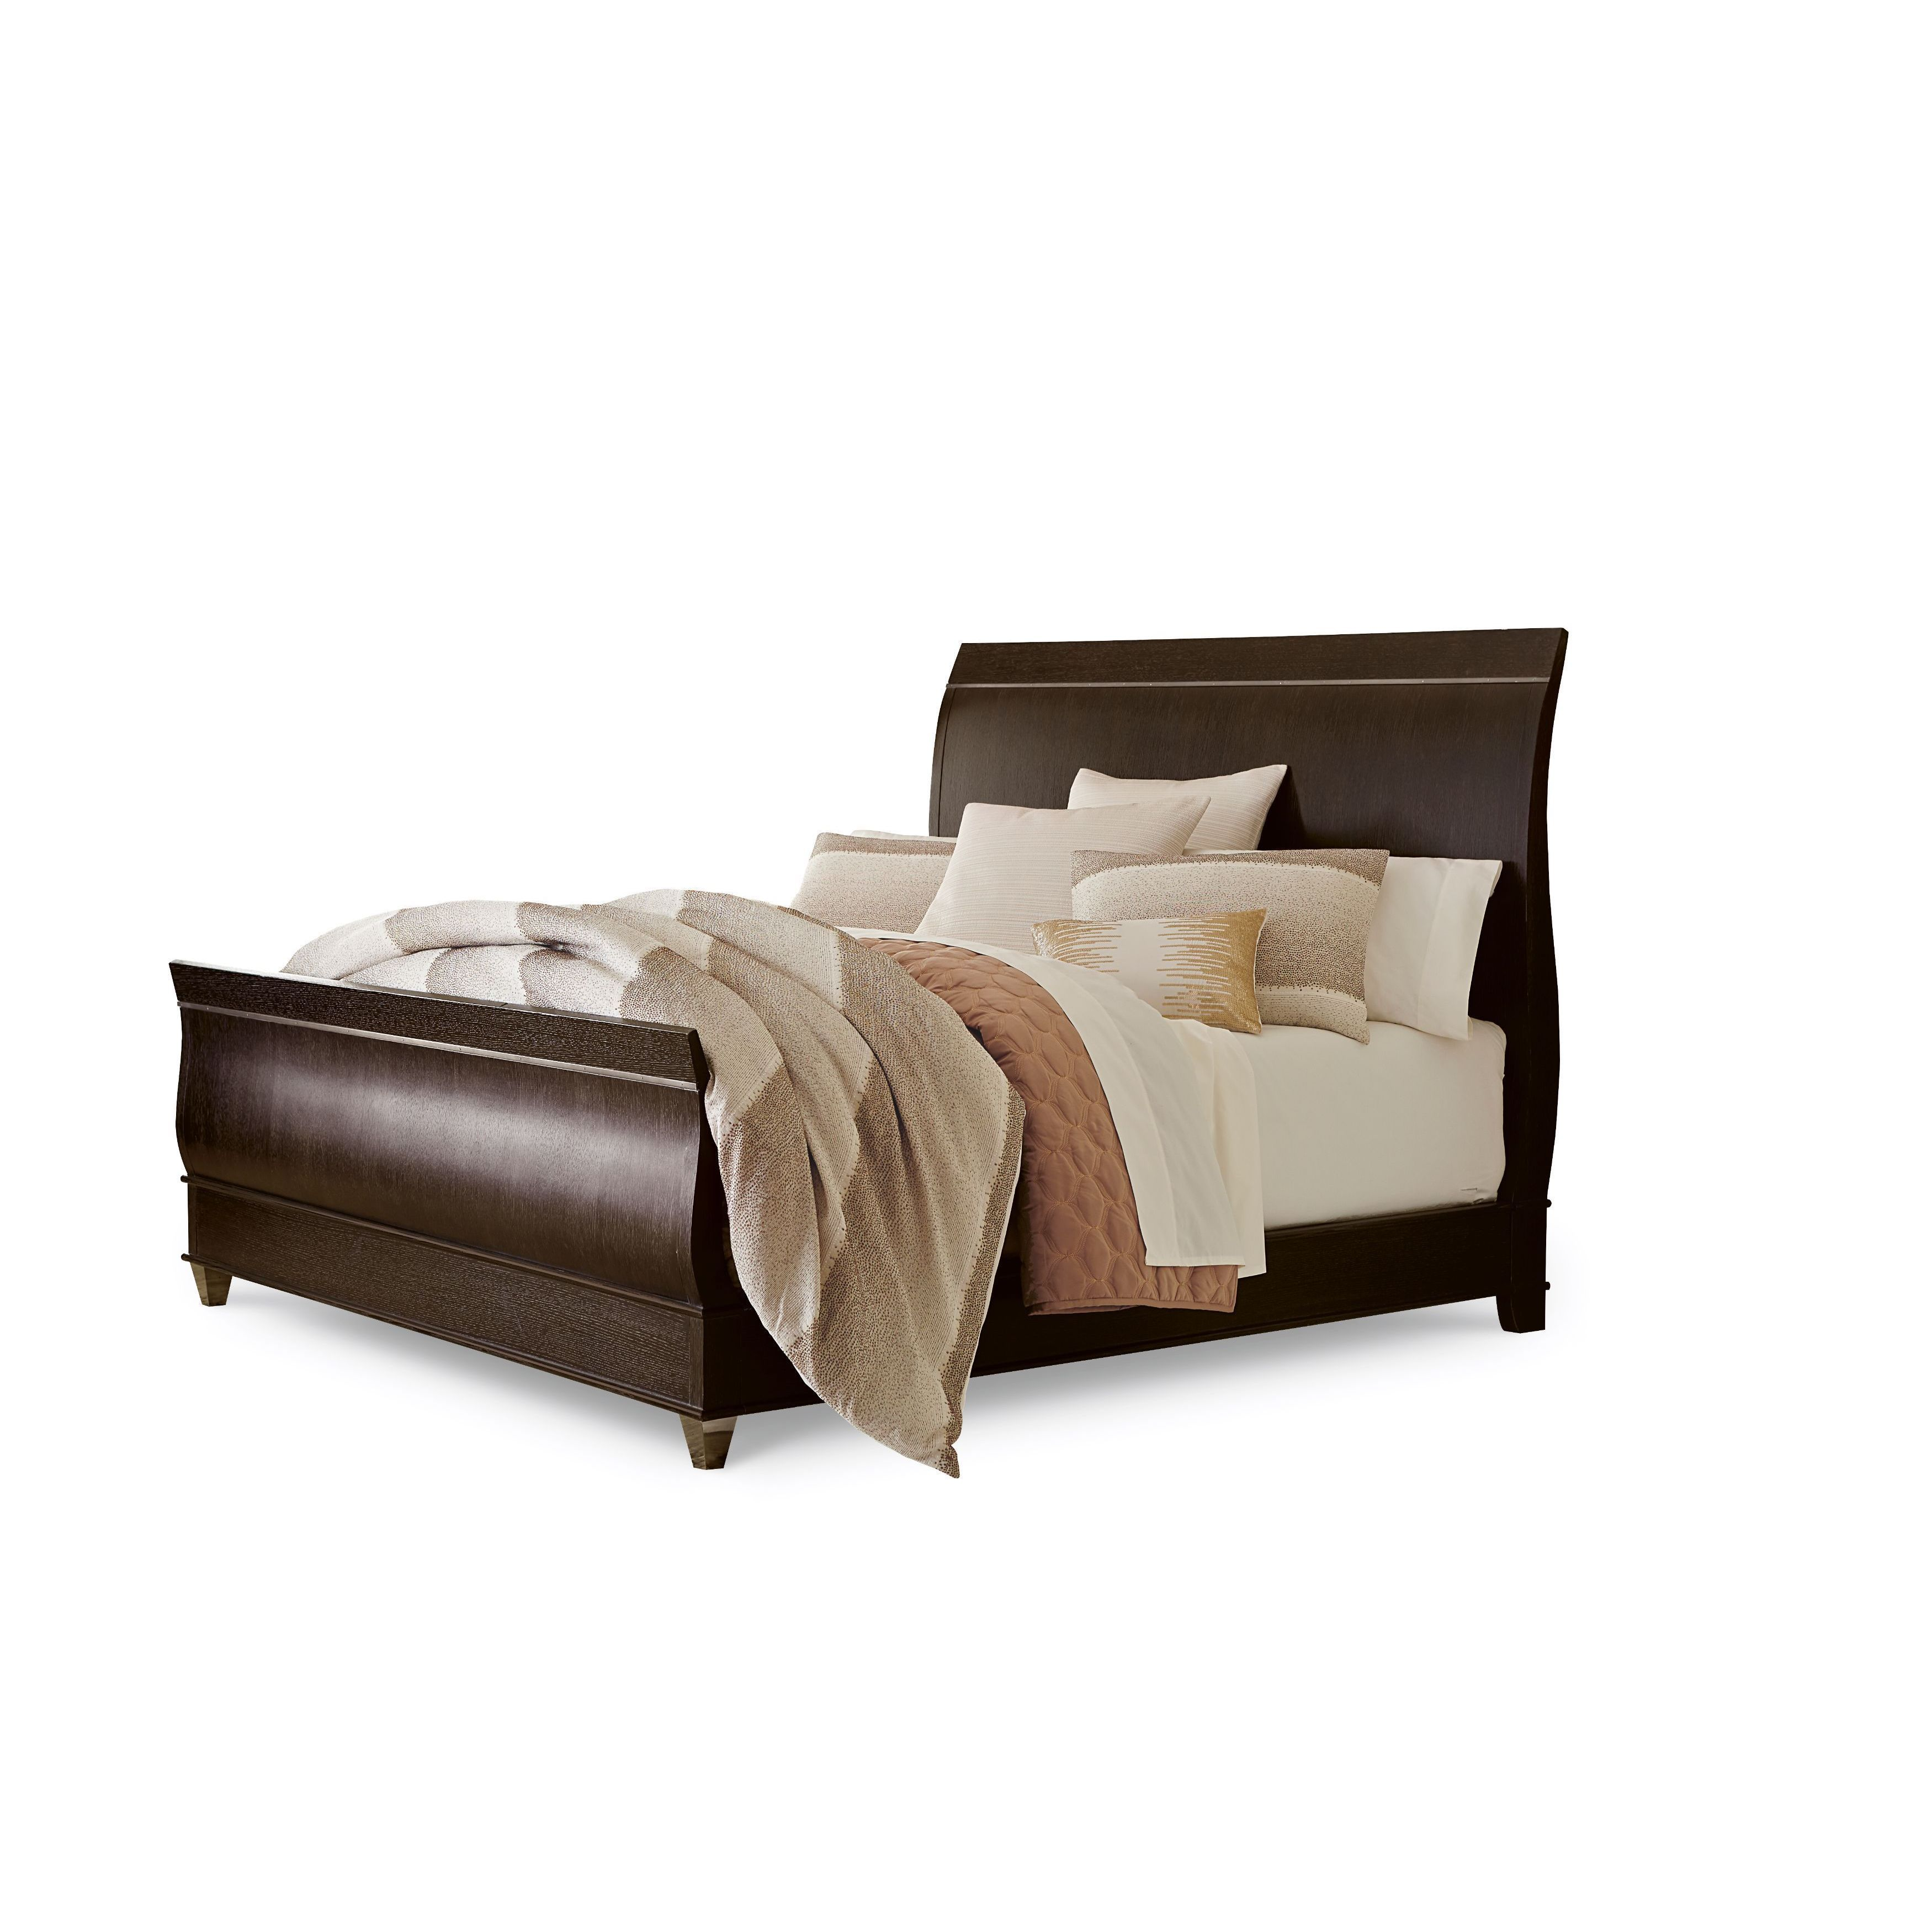 A.R.T. Furniture Greenpoint Sleigh Bed